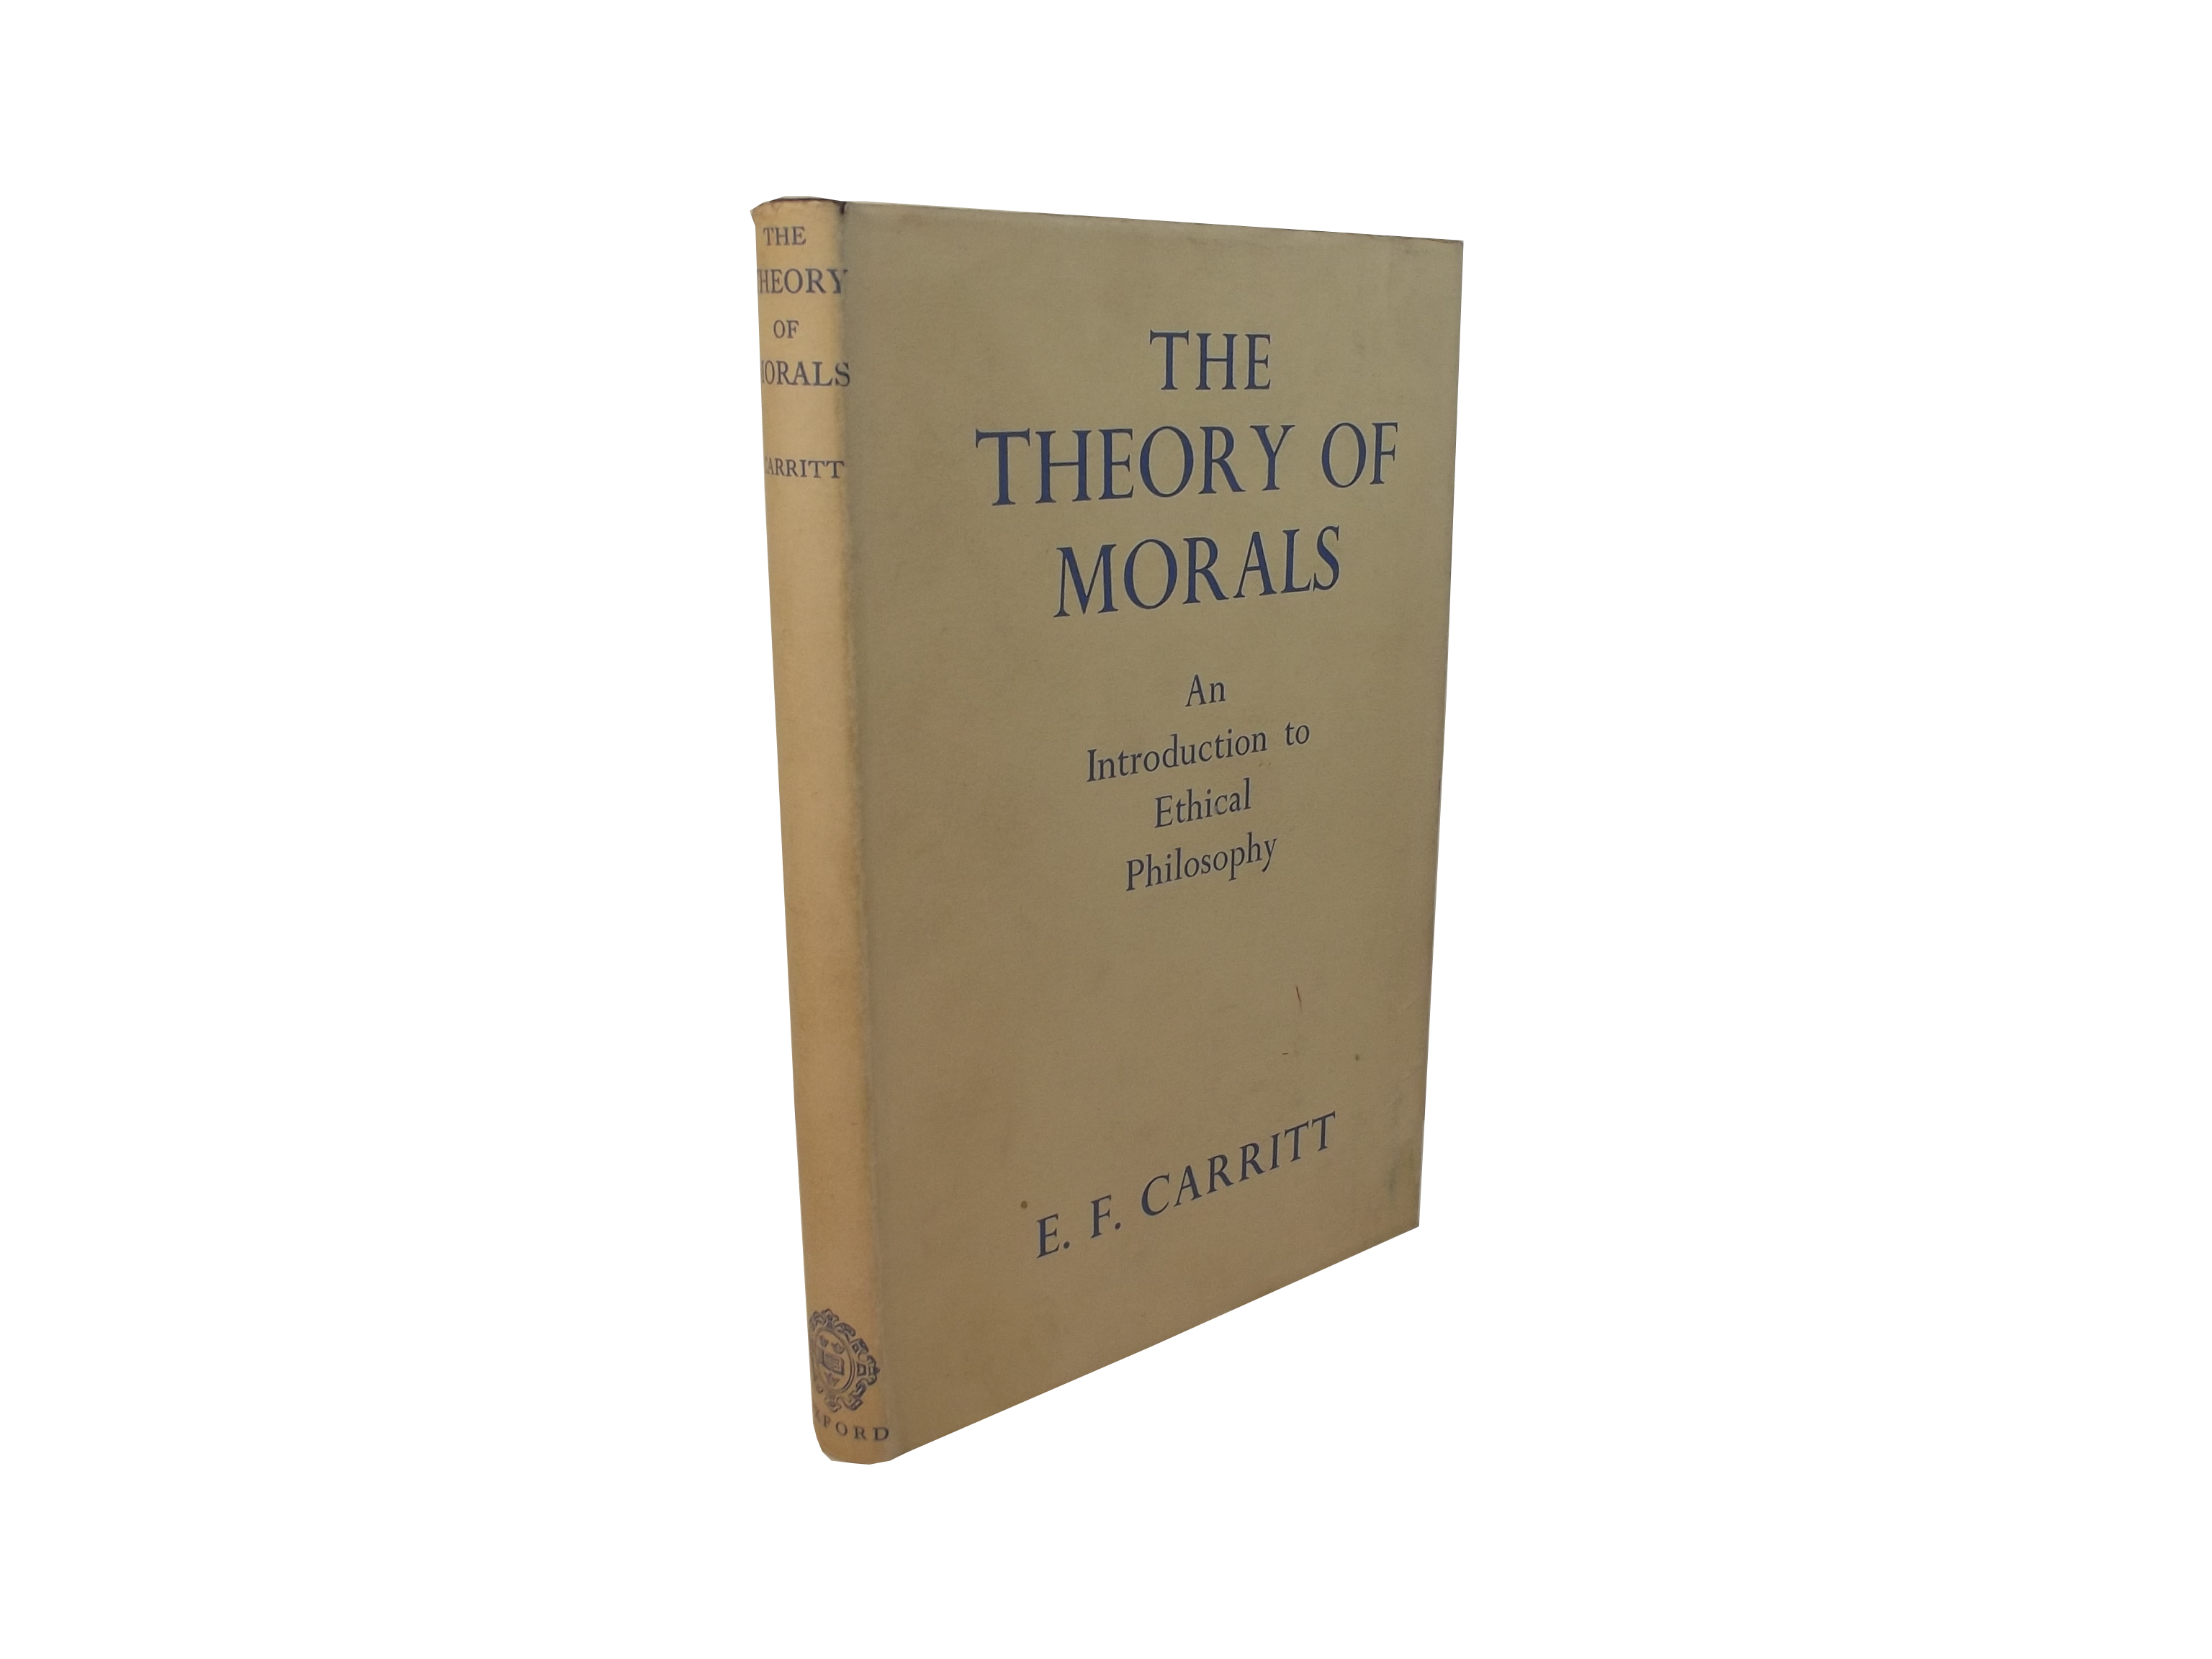 The Theory of Morals